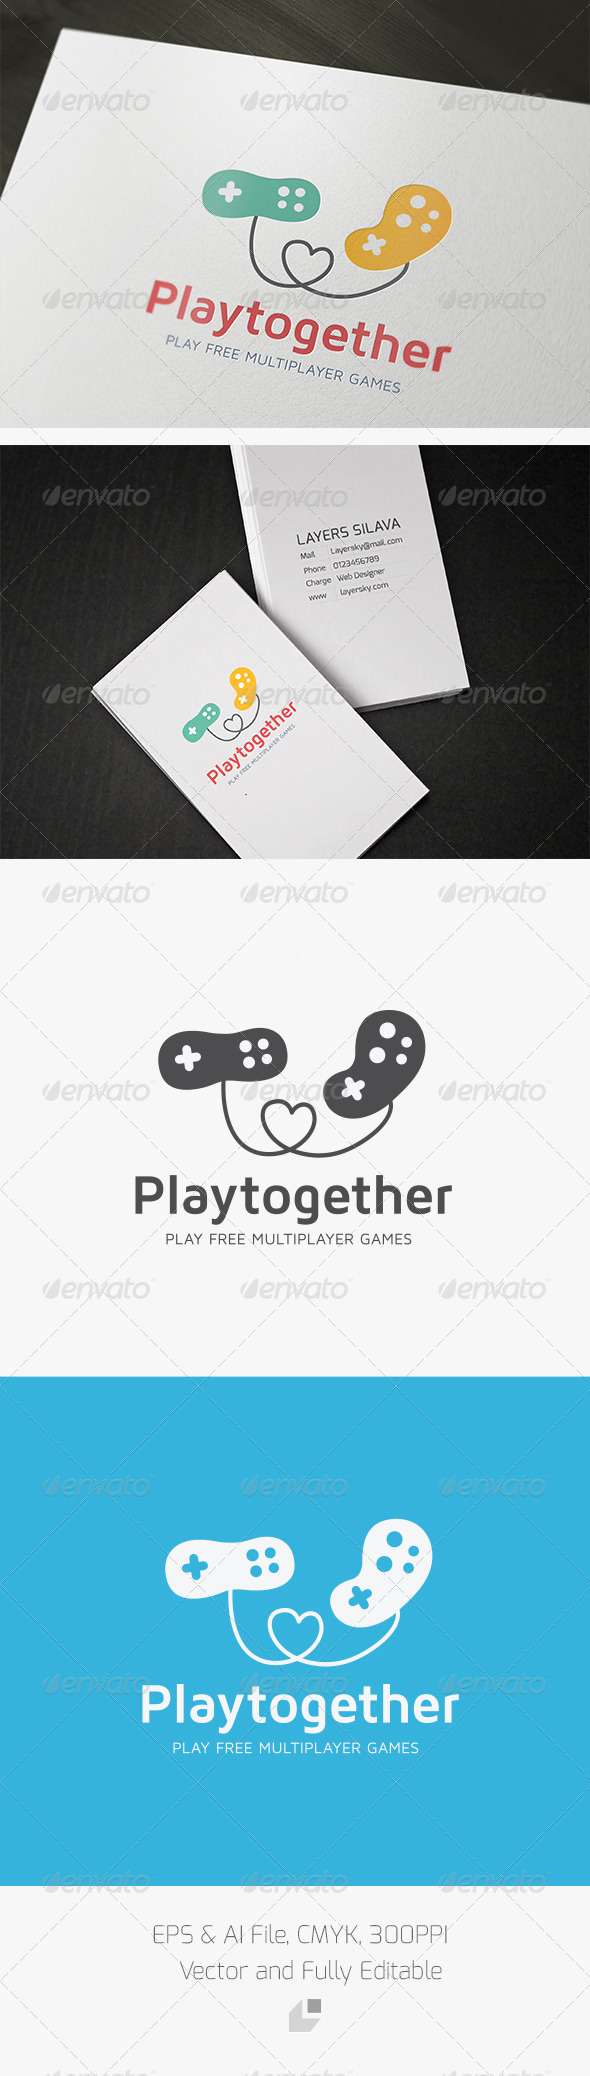 GraphicRiver Play together Logo 3337245